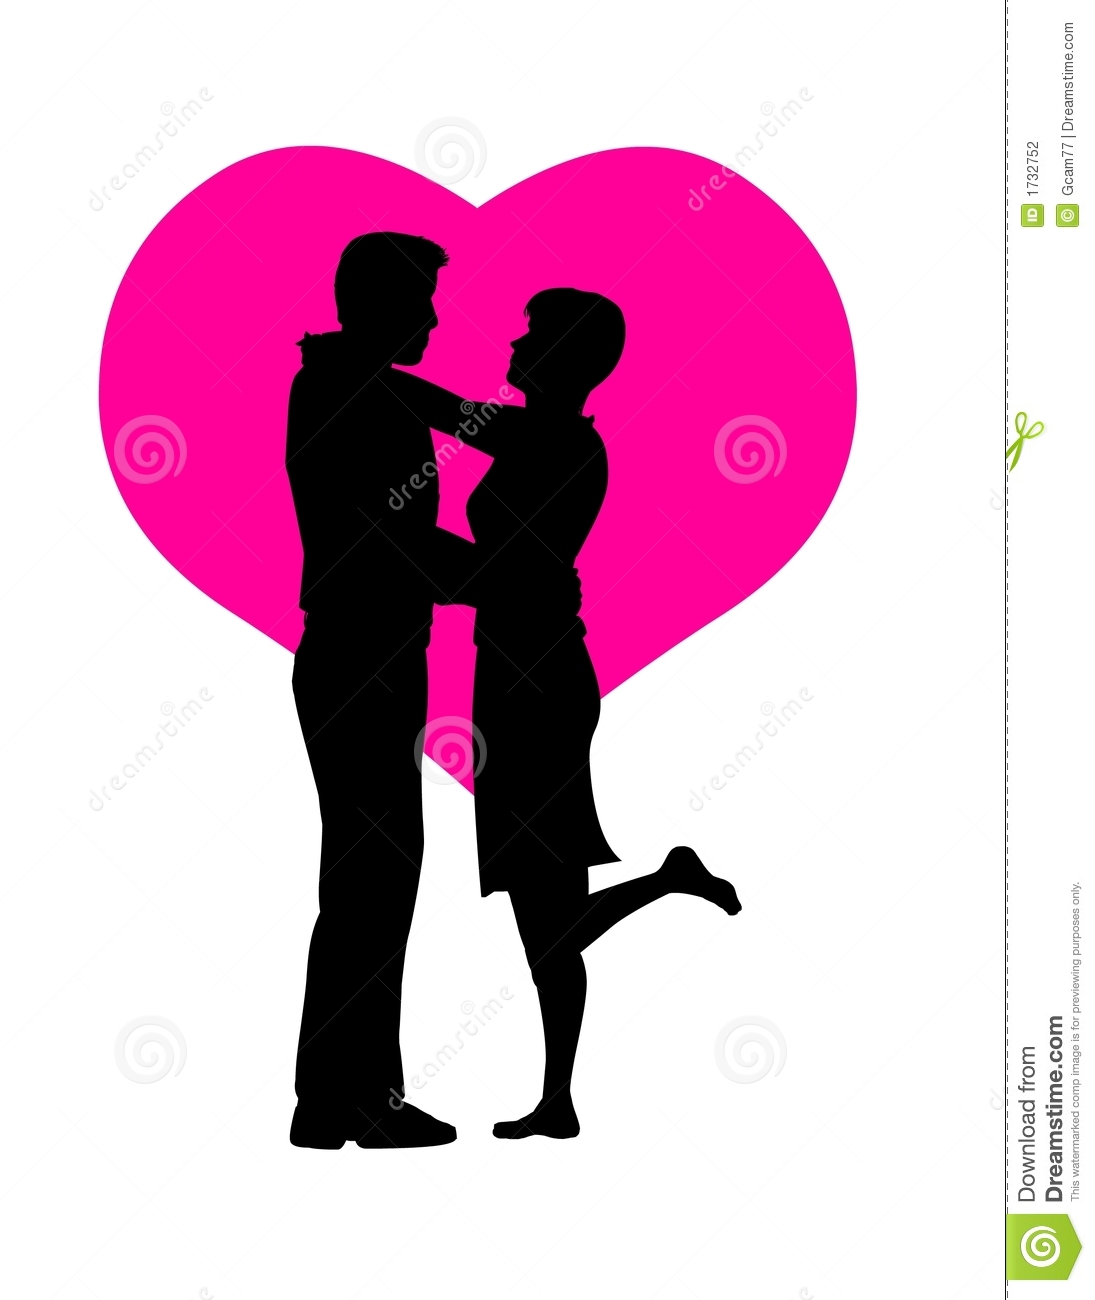 Romance clipart free graphic freeuse stock Romantic Clip Art Free | Clipart Panda - Free Clipart Images graphic freeuse stock